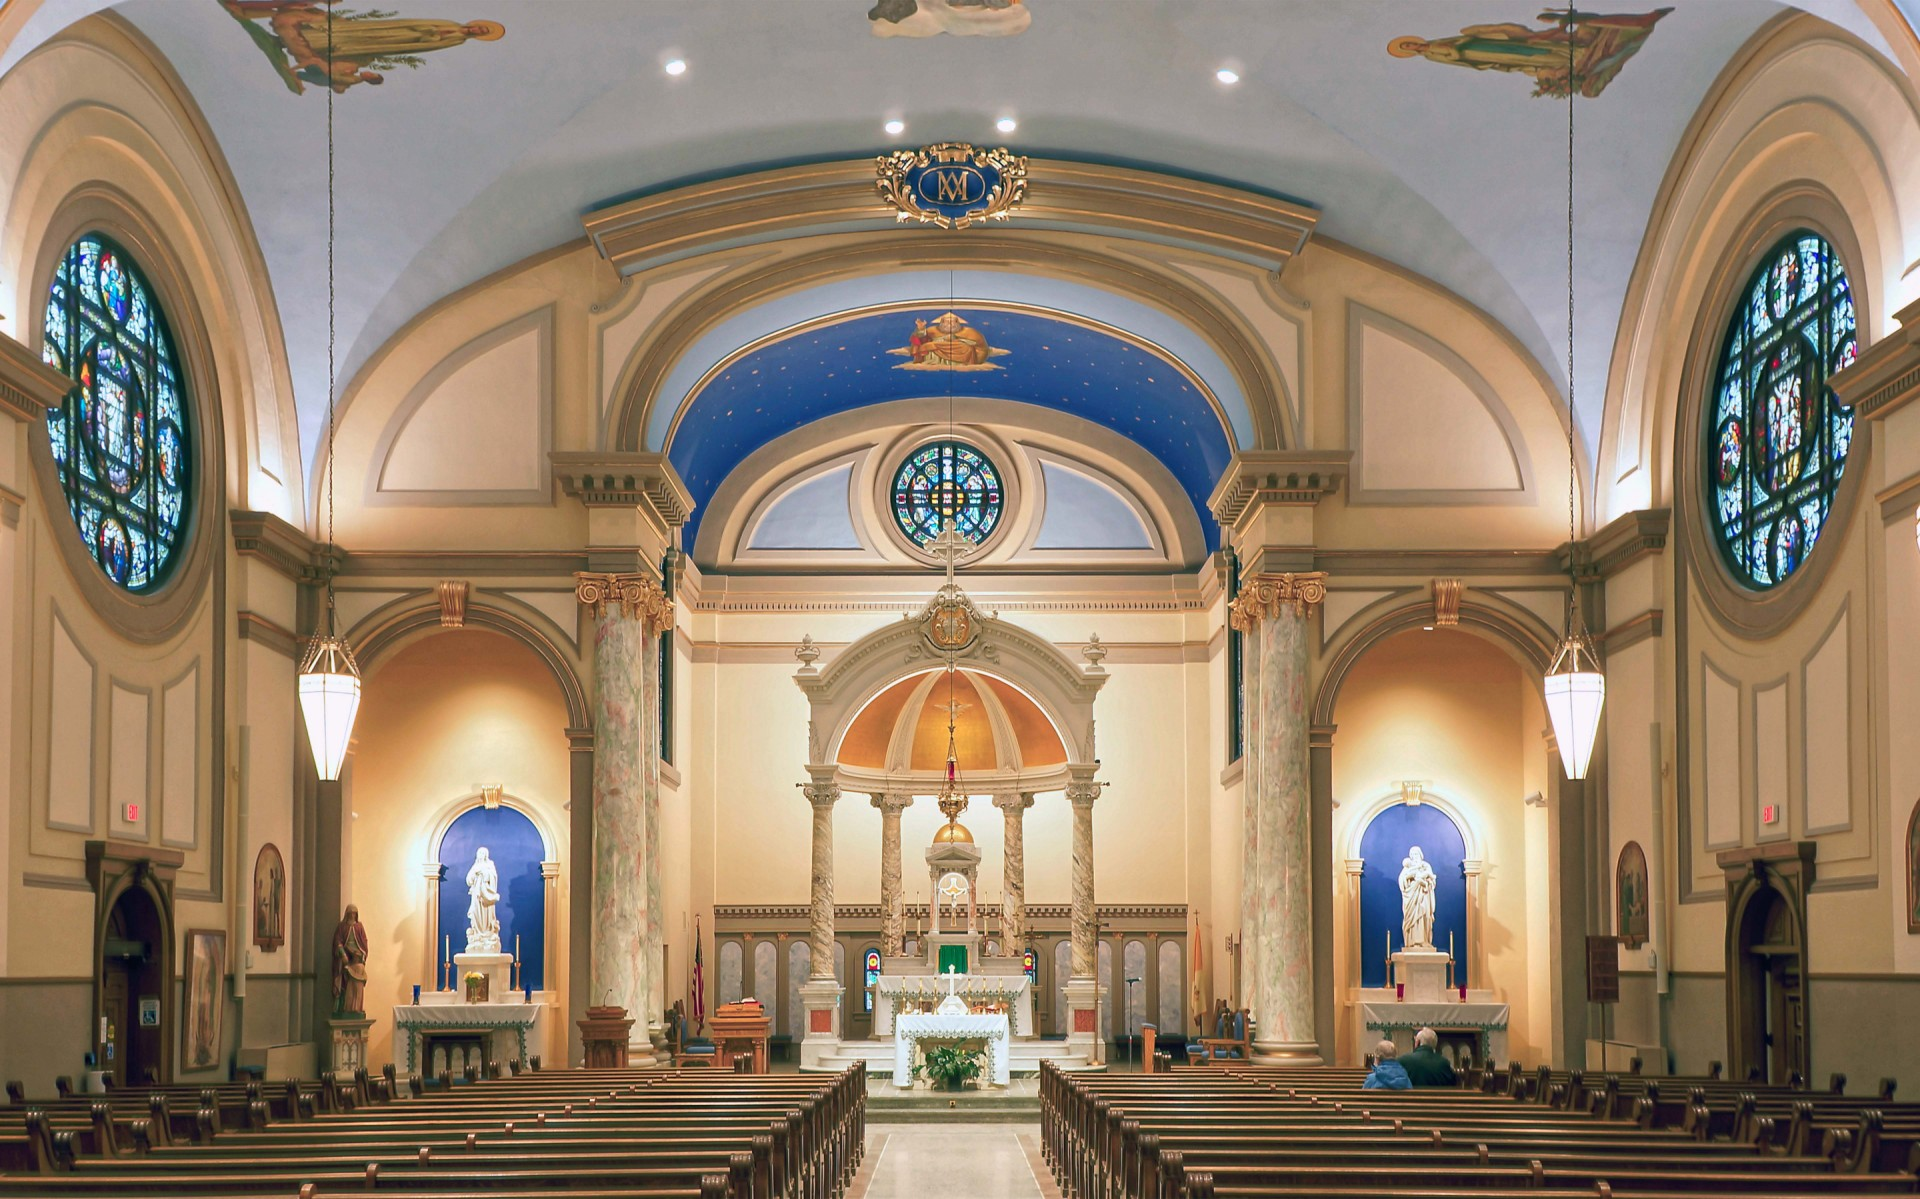 Erected in 1915, the Immaculate Conception Church in Cedar Rapids, Iowa, United States, was last updated in the 1980s. – Brian Gunning